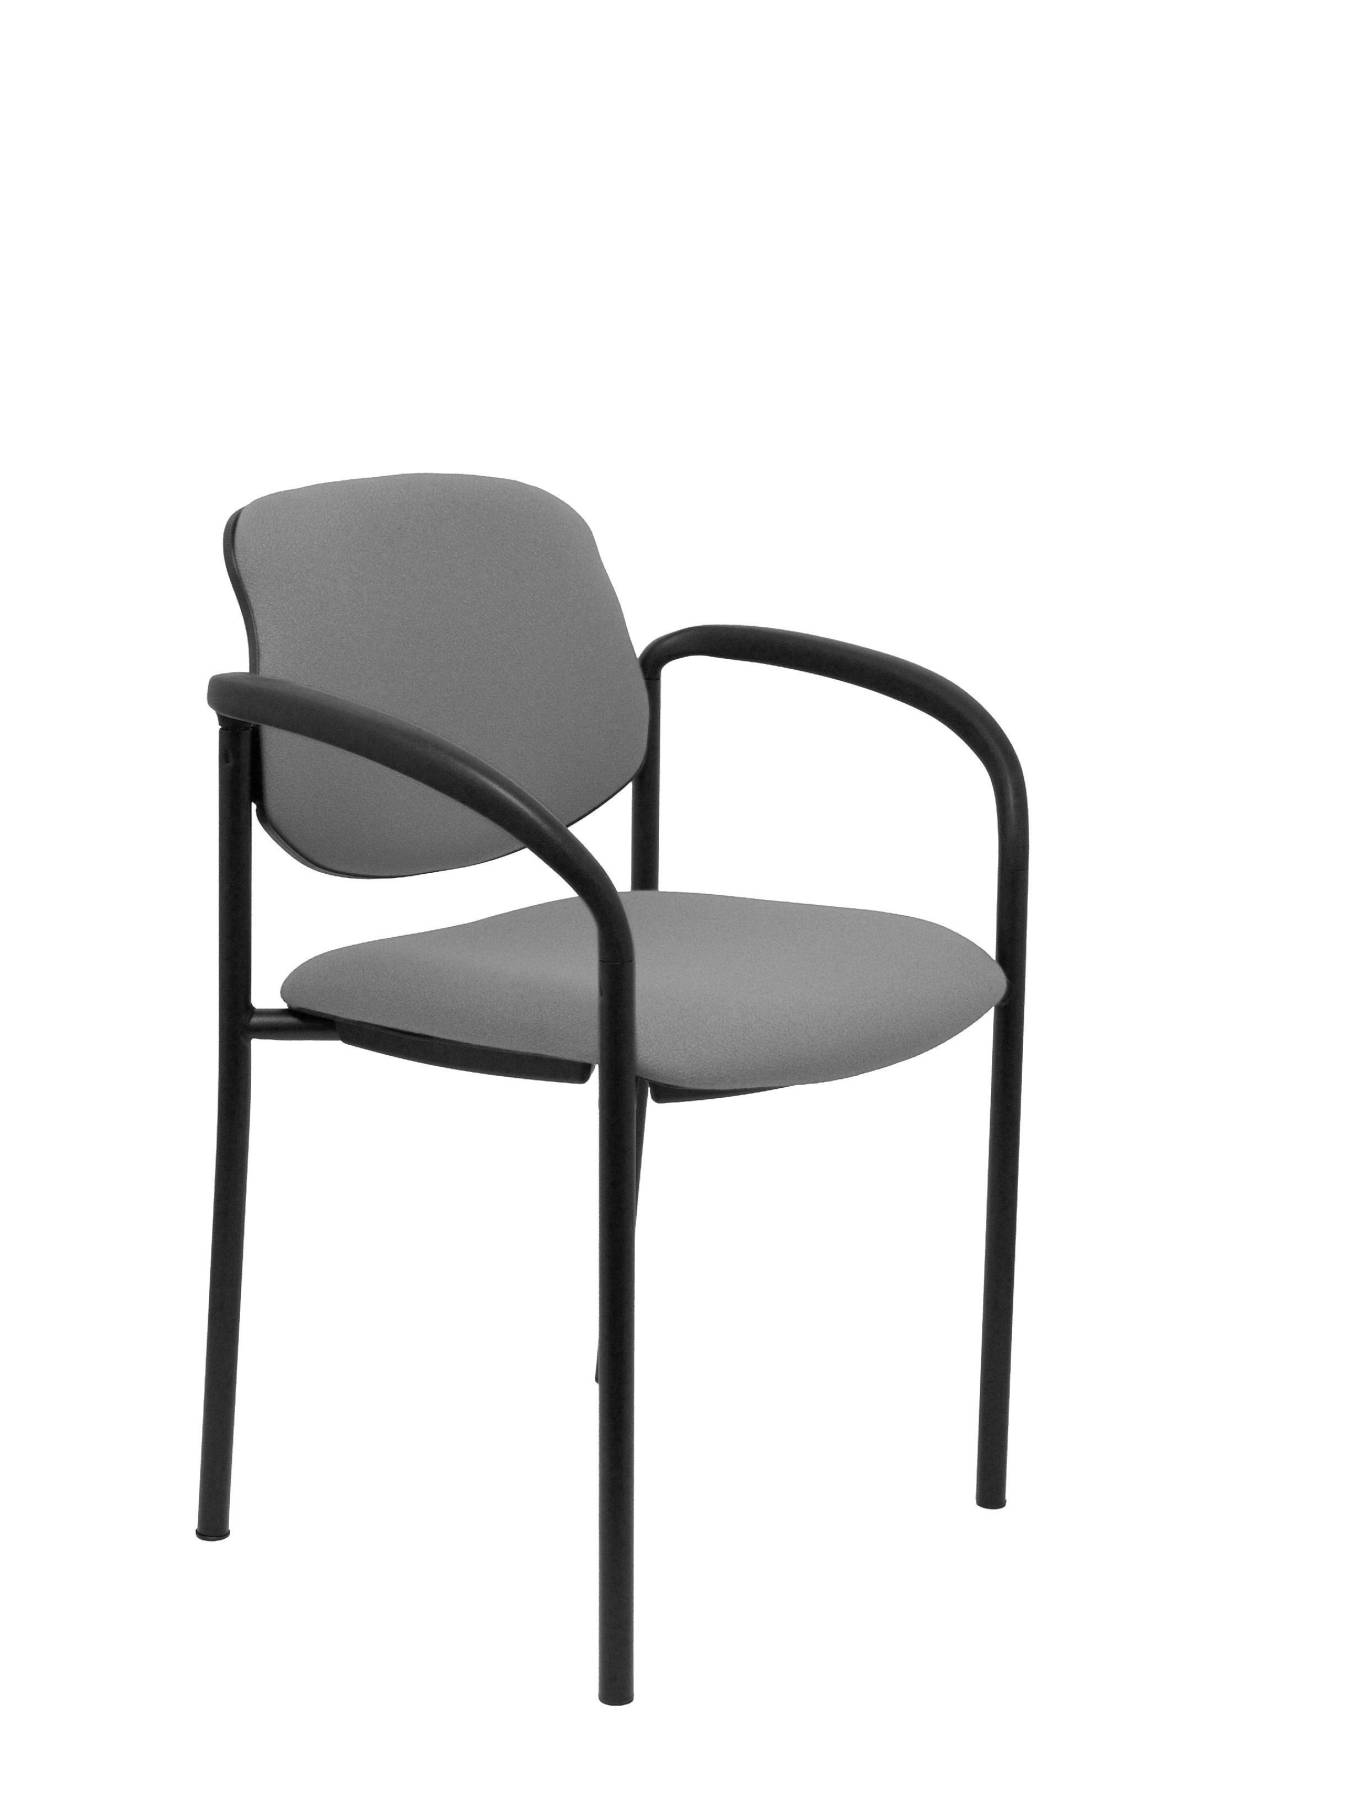 Visitor Chair 4's Topsy, With Arms And Estructrua Negro-up Seat And Backstop Upholstered In BALI Tissue Gray Color PIQU